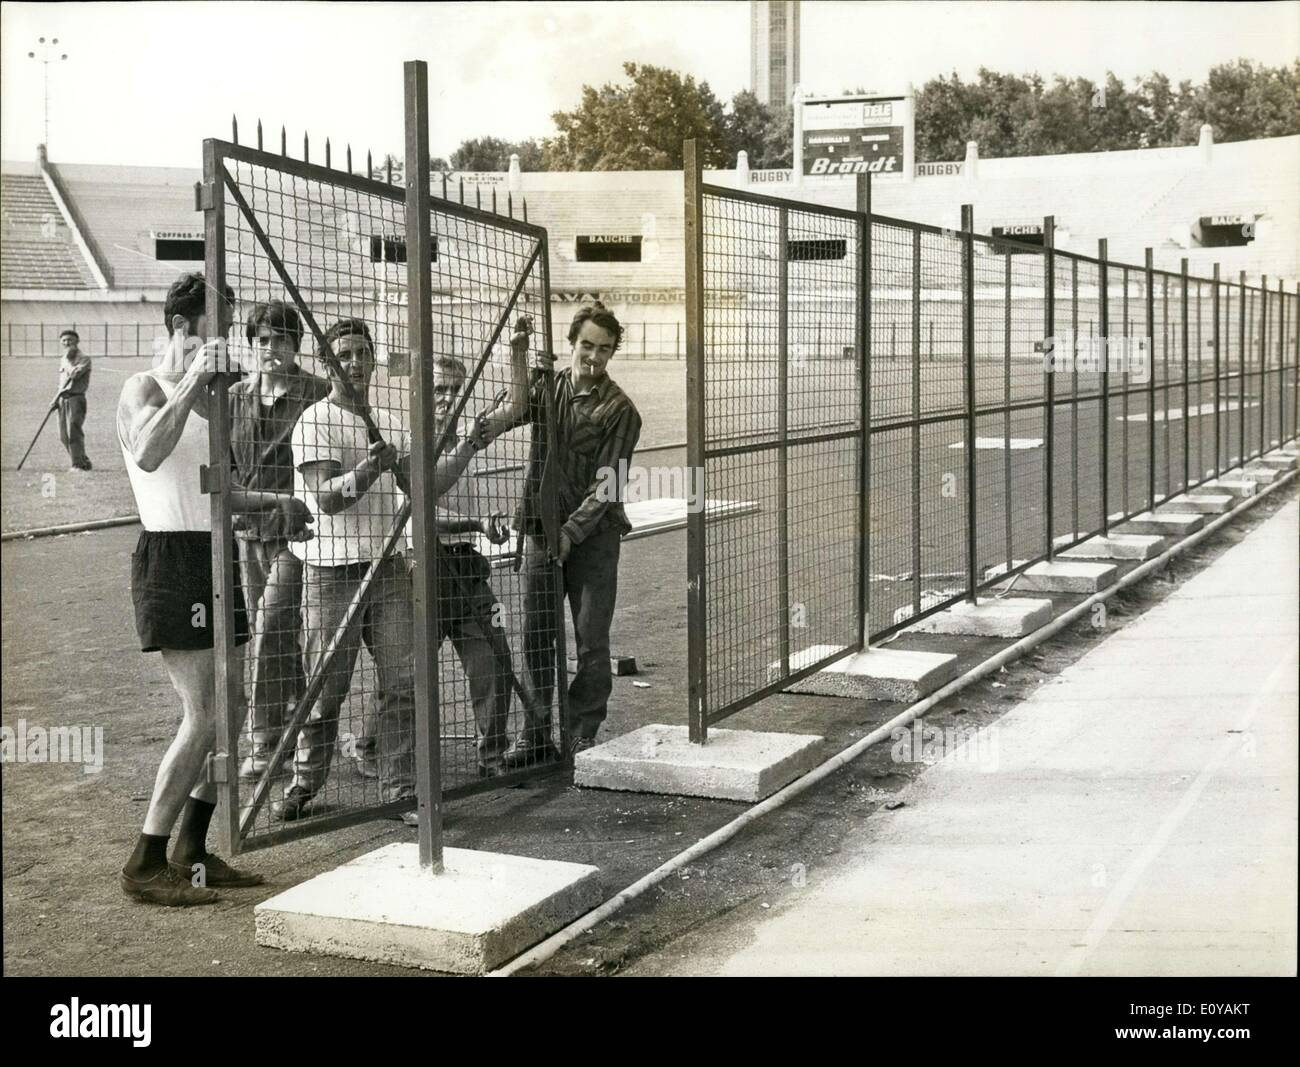 Sep. 18, 1969 - Added Security for Marseille Saint-Etienne Match in Marseille .c - Stock Image